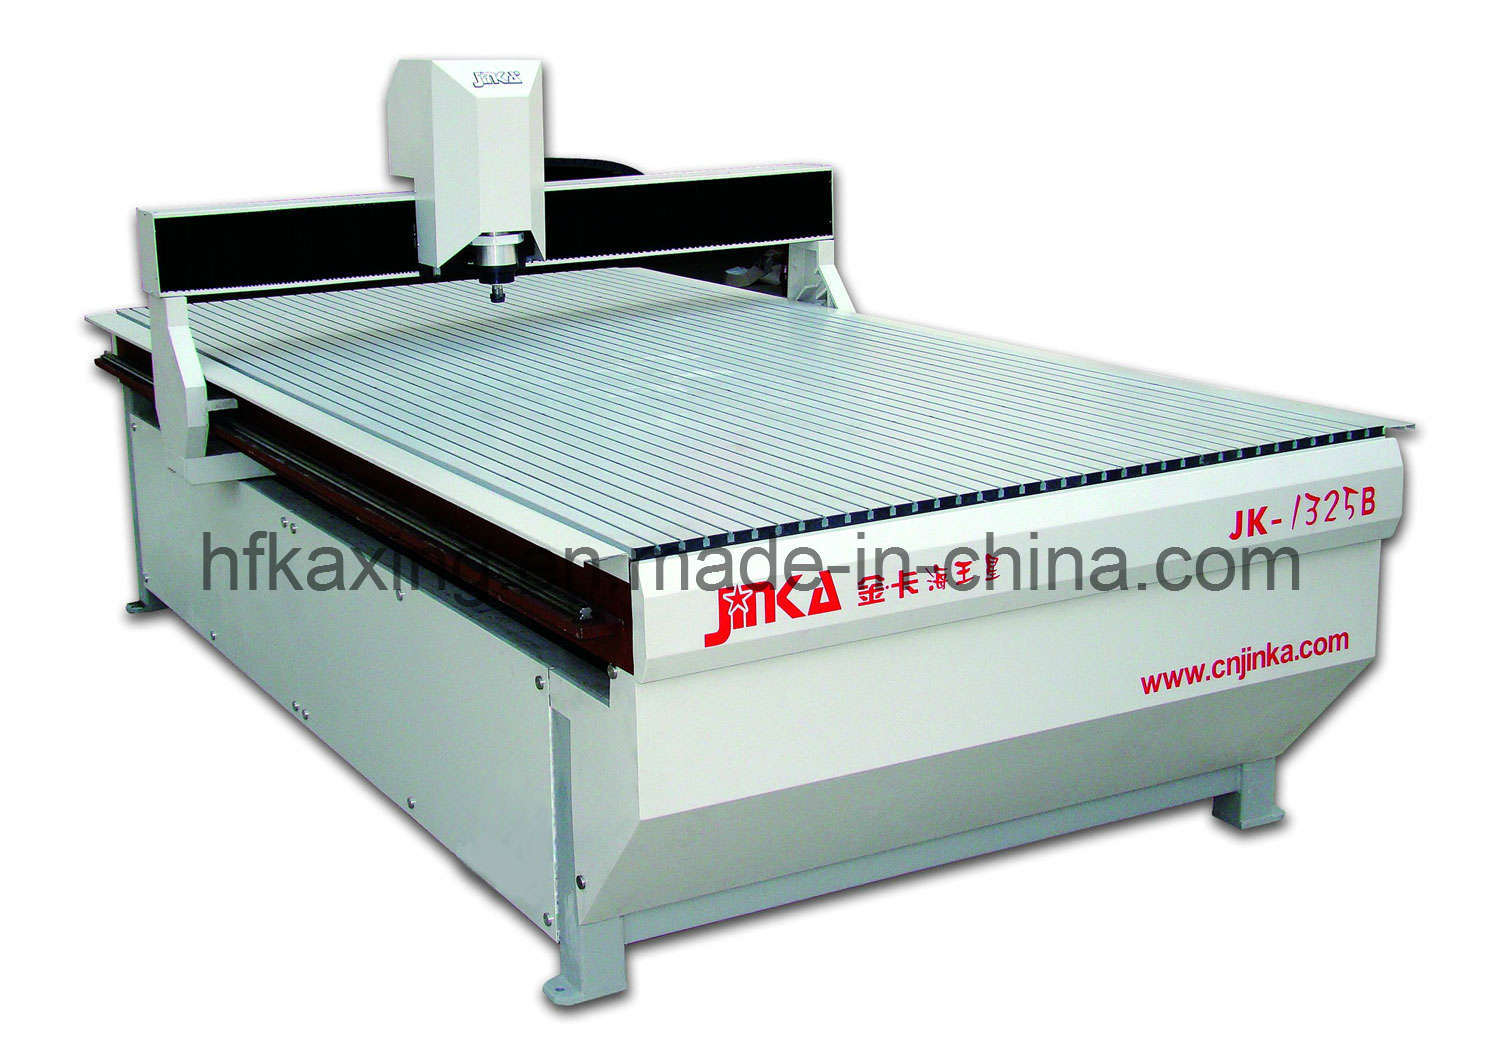 Competitive Neptune Rolling Ball Screw Advertising CNC Engraver CNC Router